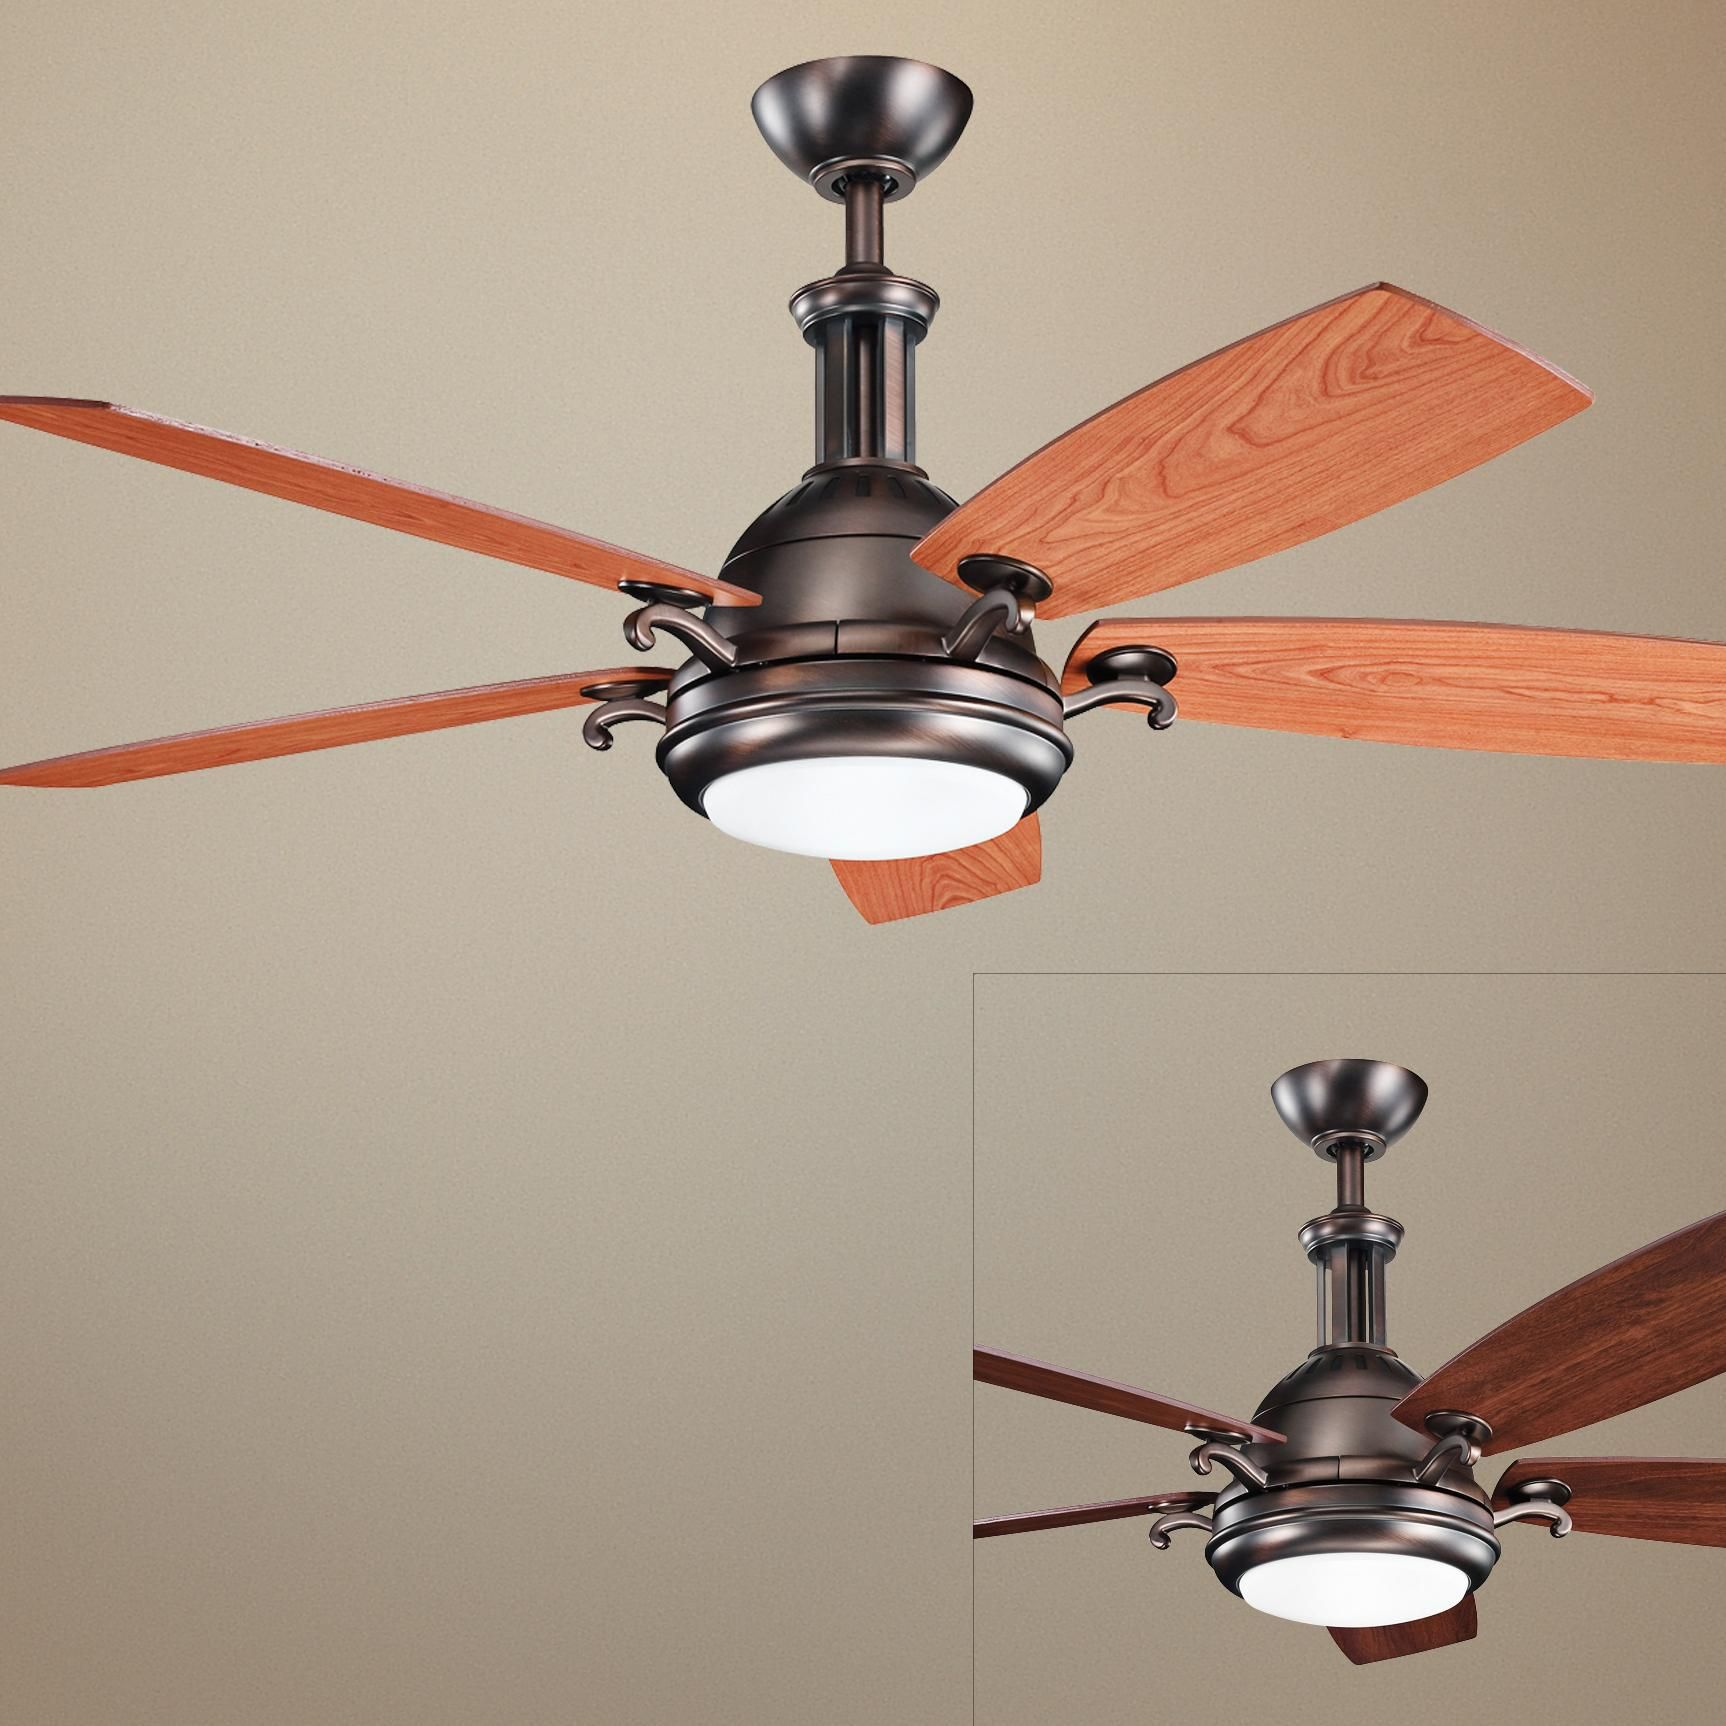 Kichler Malay 52 In Brushed Nickel Led Ceiling Fan With Light Remote Control And Light Kit 4 Blade Lowes Com In 2021 Ceiling Fan With Light Fan Light Ceiling Fan